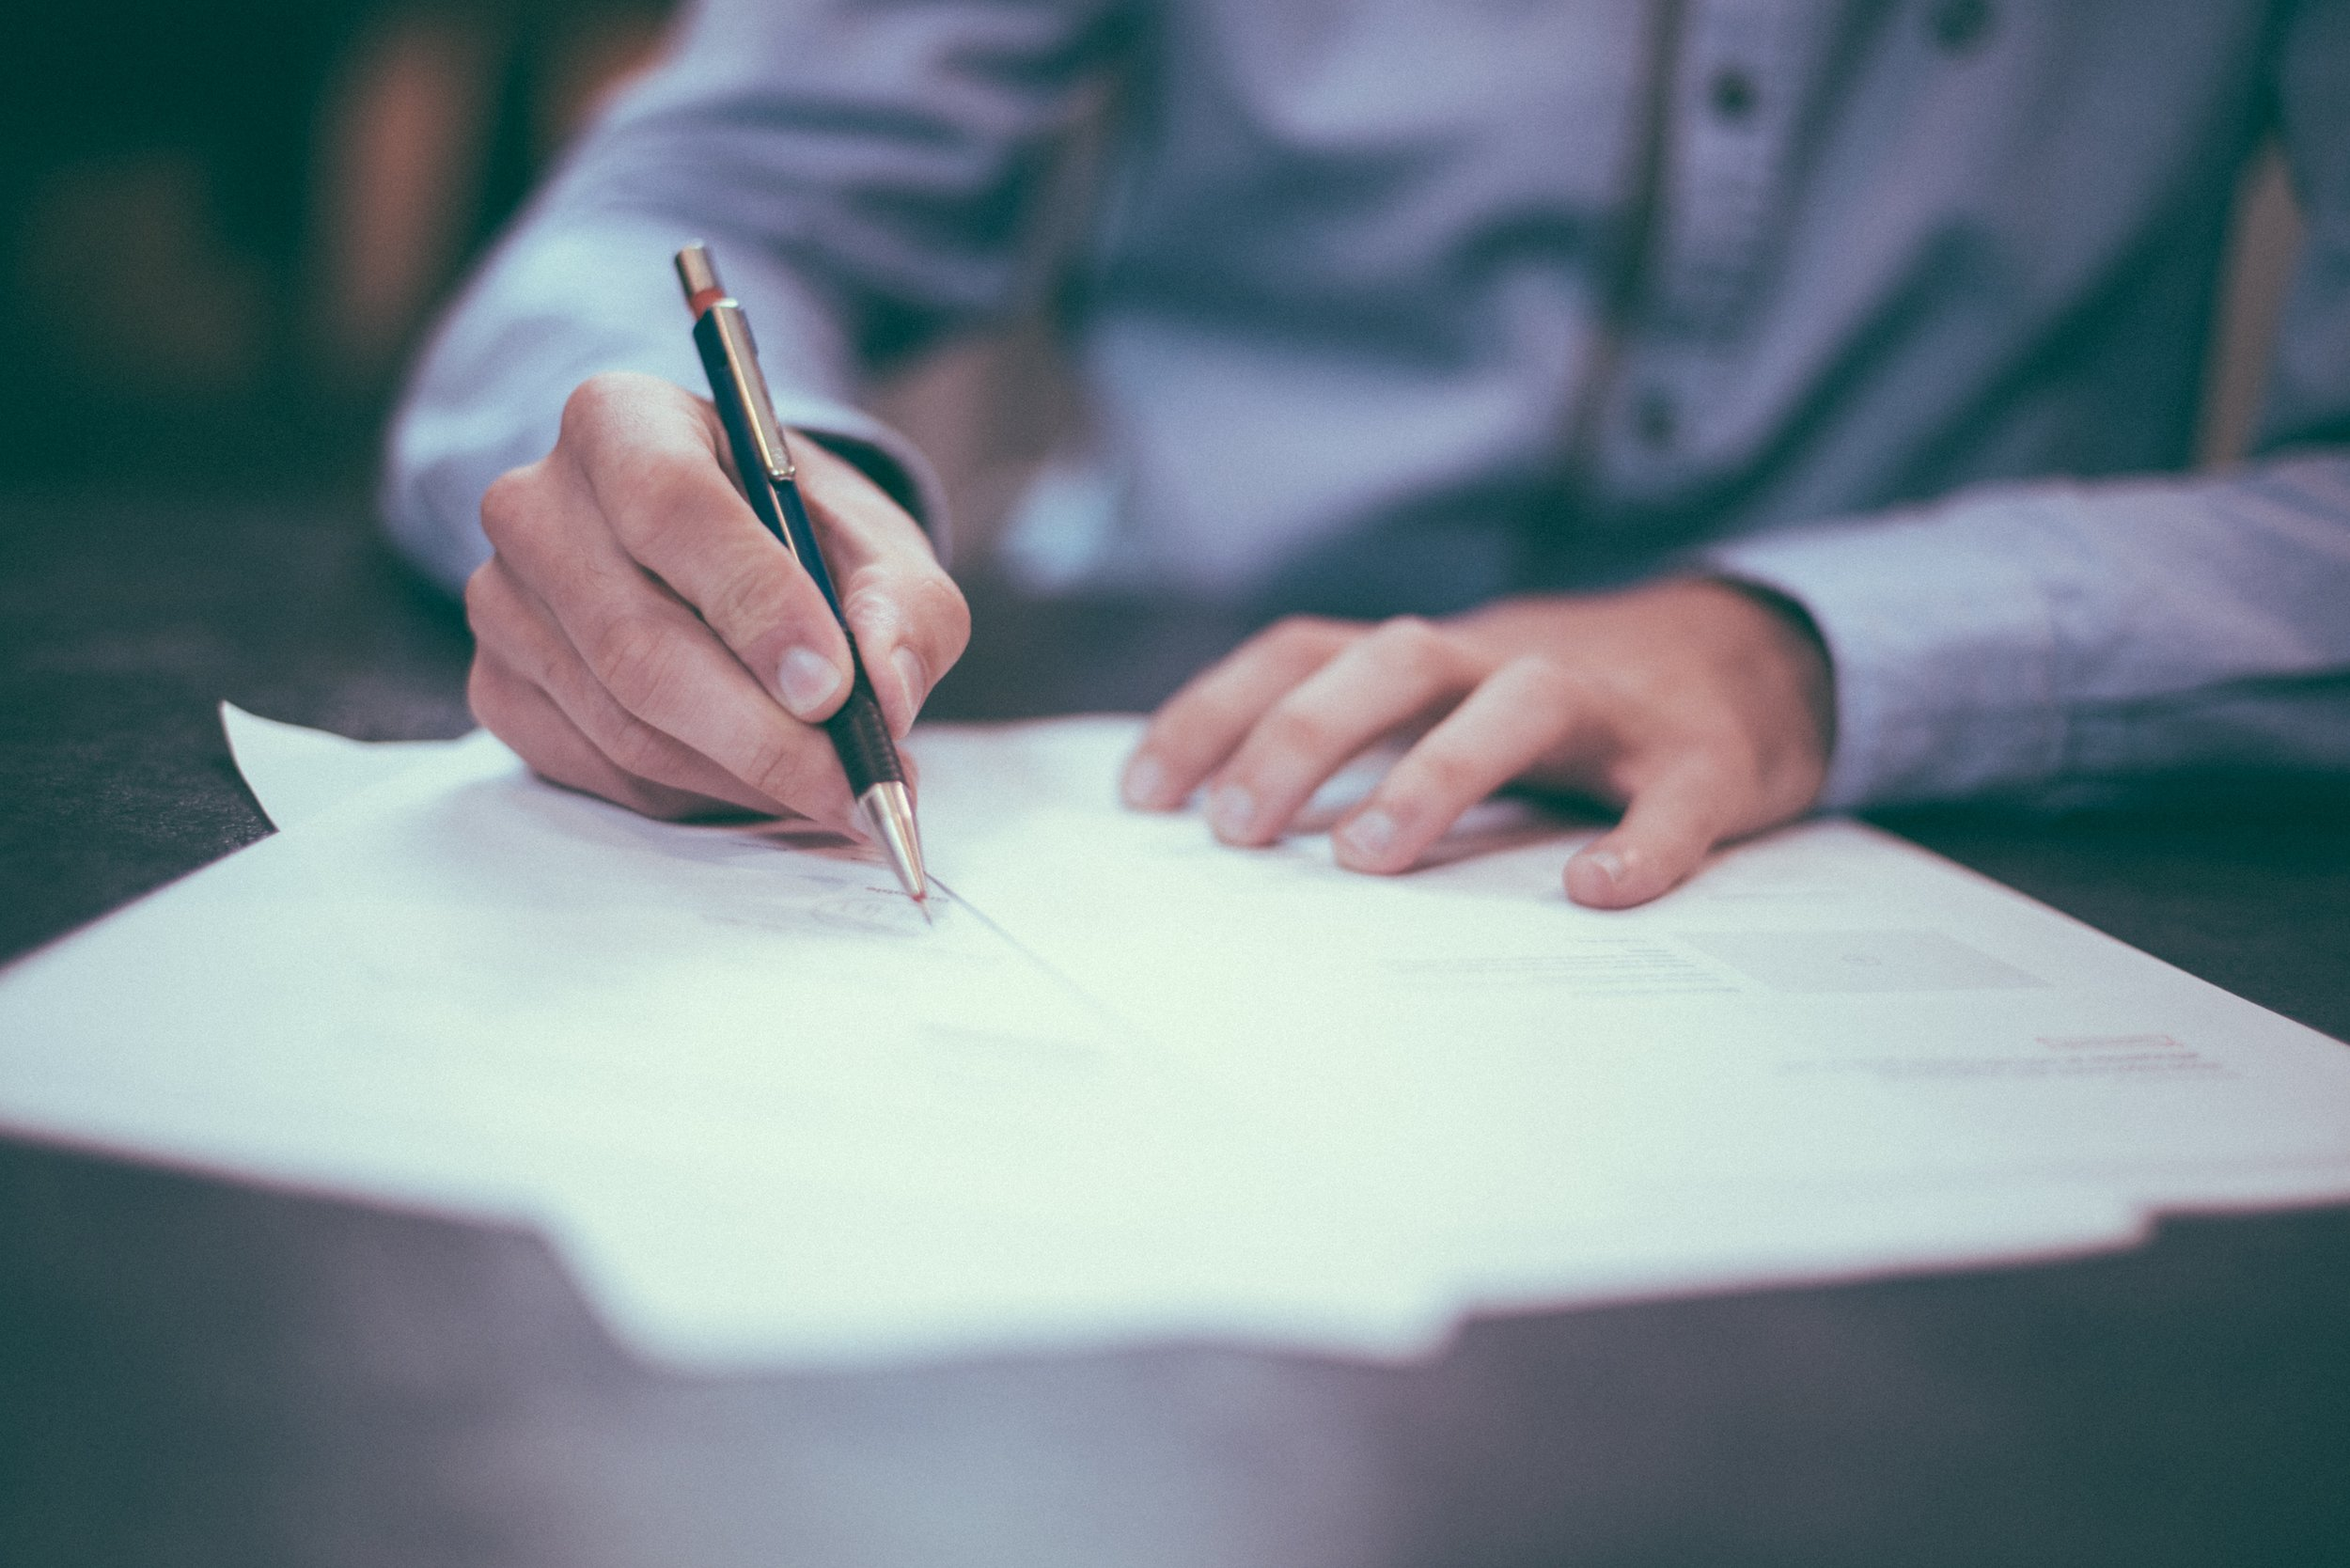 How to remain compliant with new regulations